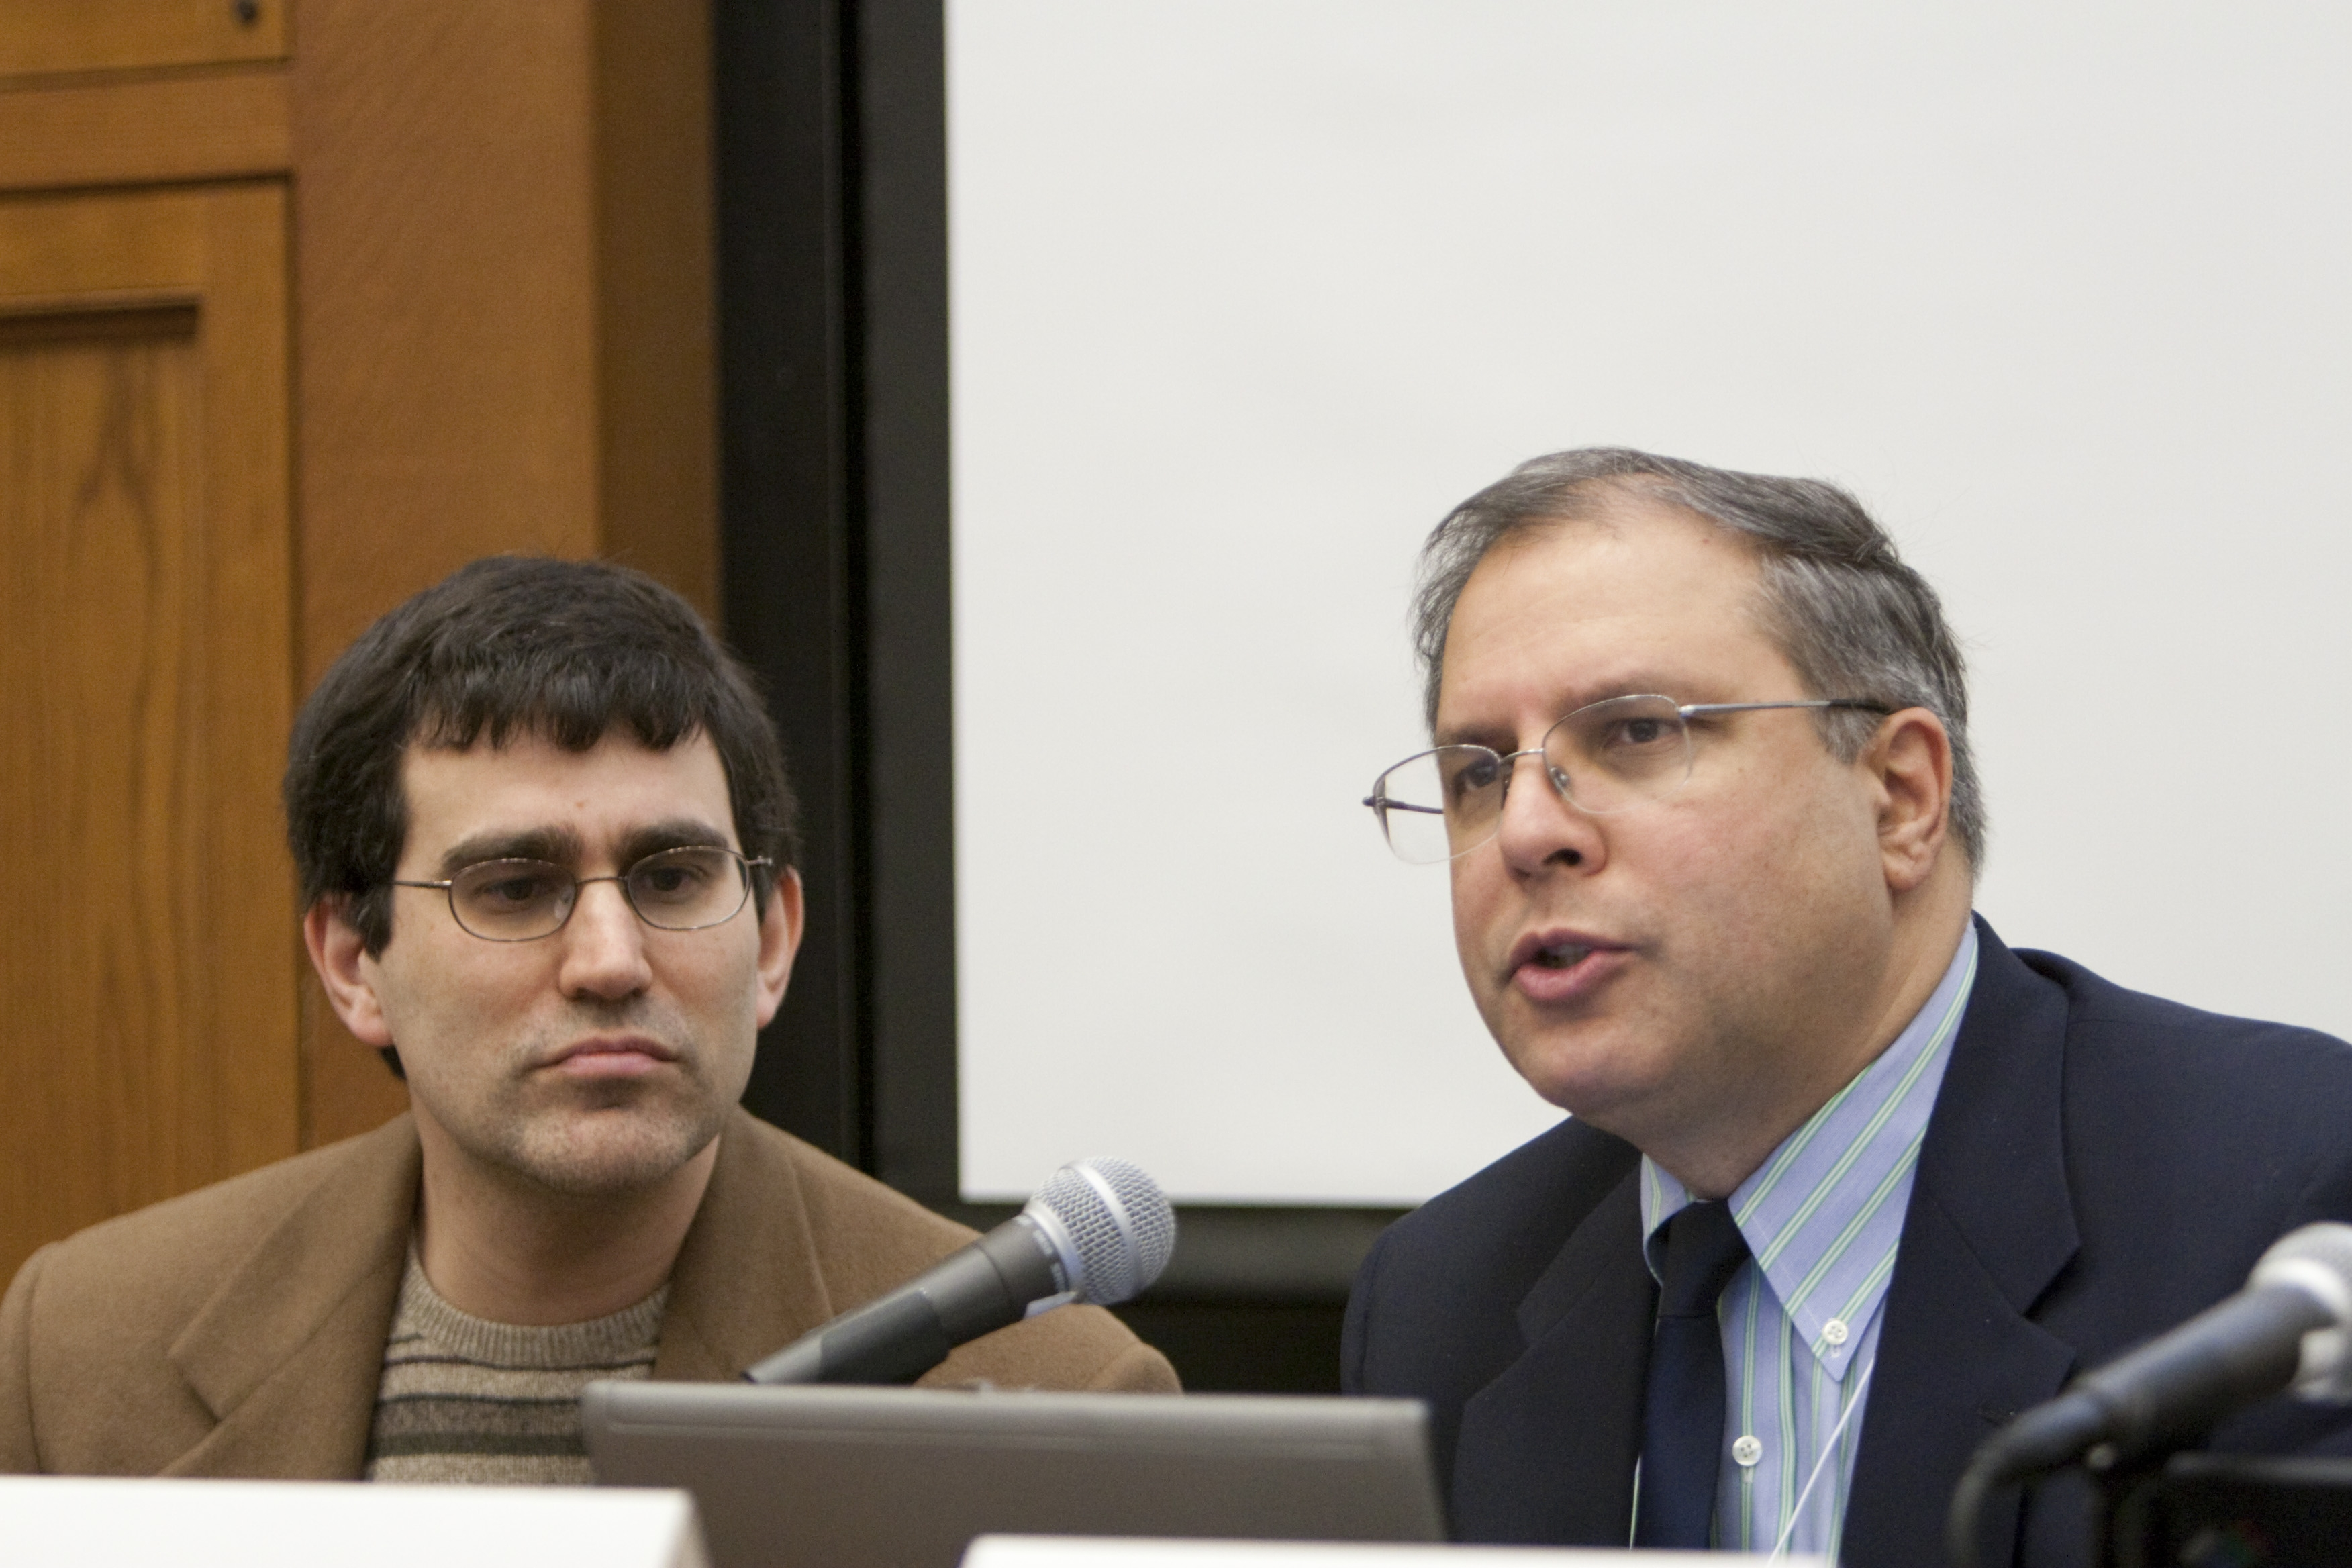 Yale SOM Prof. Andrew Metrick and Chicago Booth Prof. Anil Kashyap